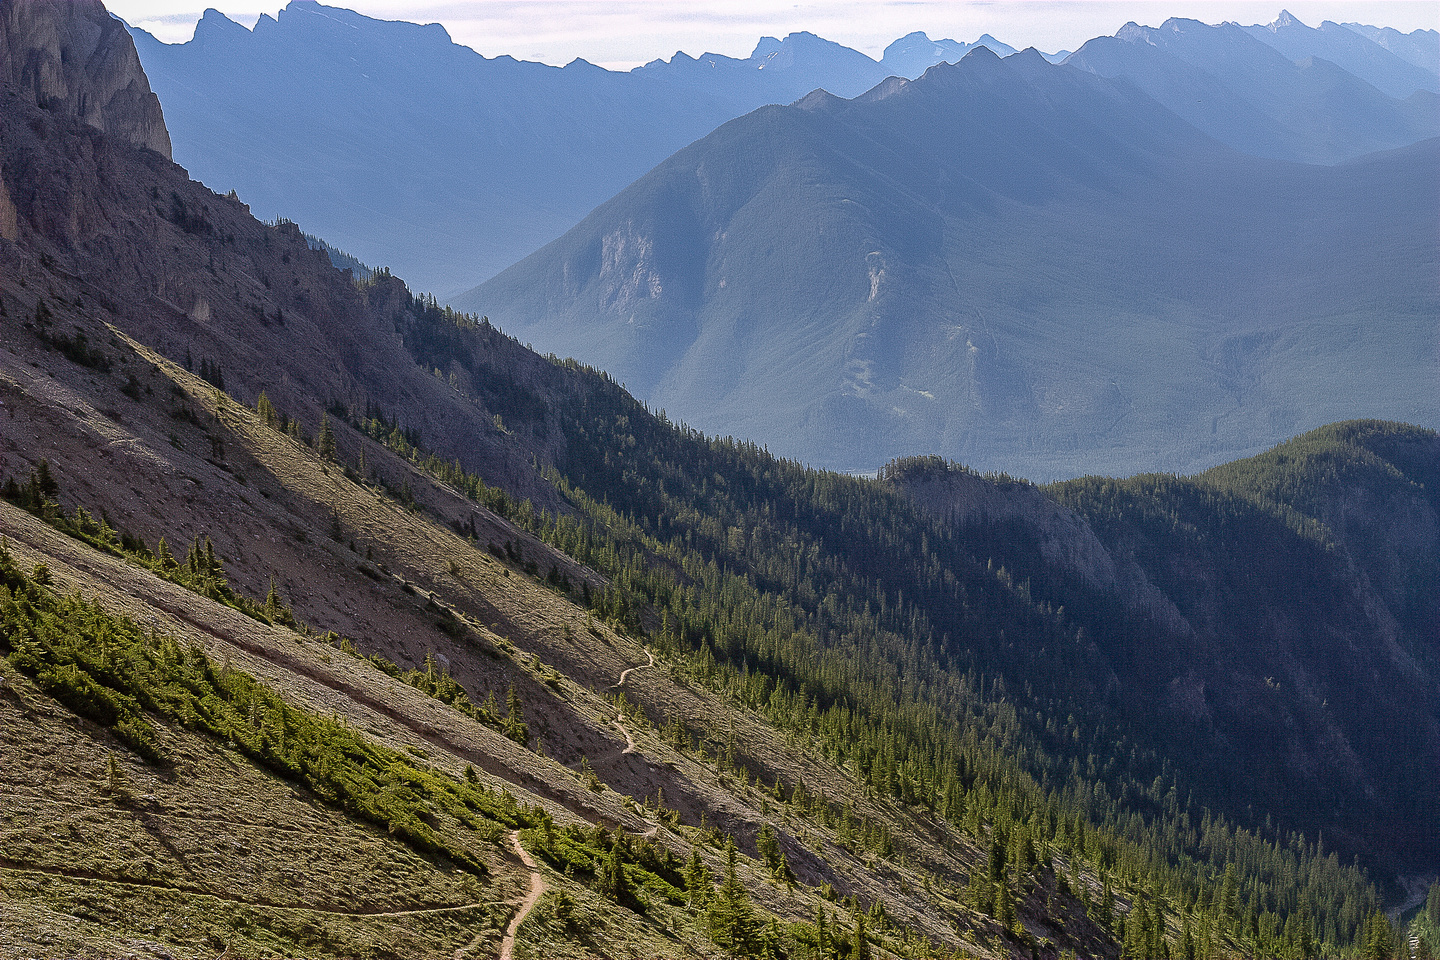 The trail up to Cory Pass is clearly illuminated as seen from the pass.